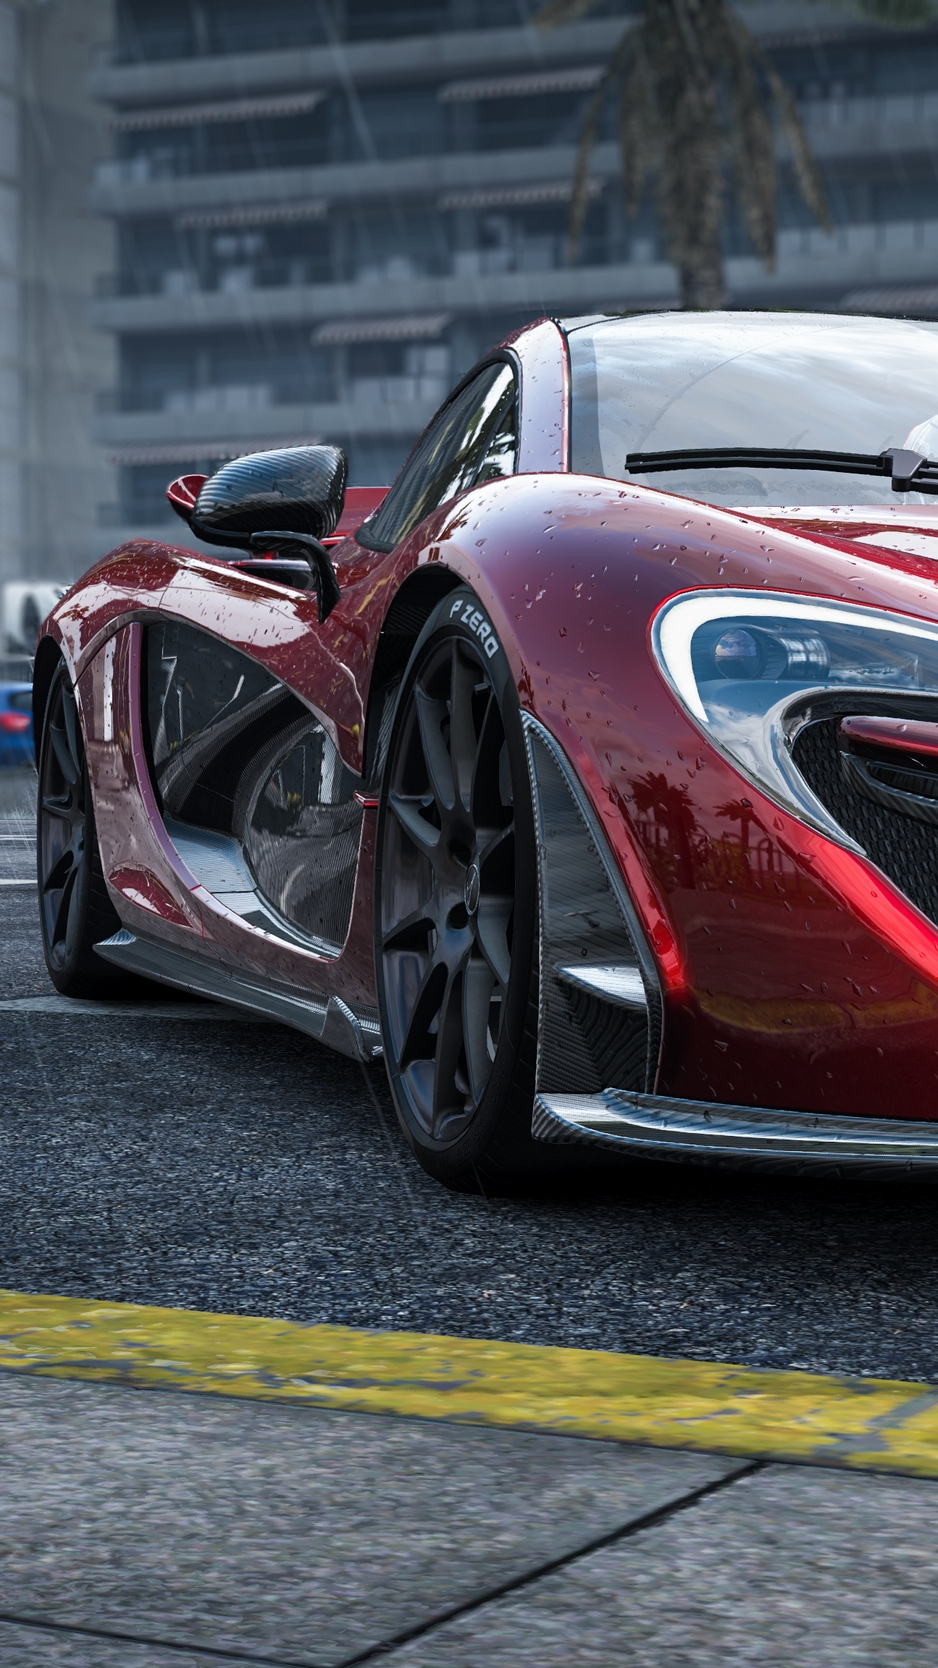 Wallpaper Mclaren P1 Mclaren Sports Car Front View Mclaren P1 456835 Hd Wallpaper Backgrounds Download